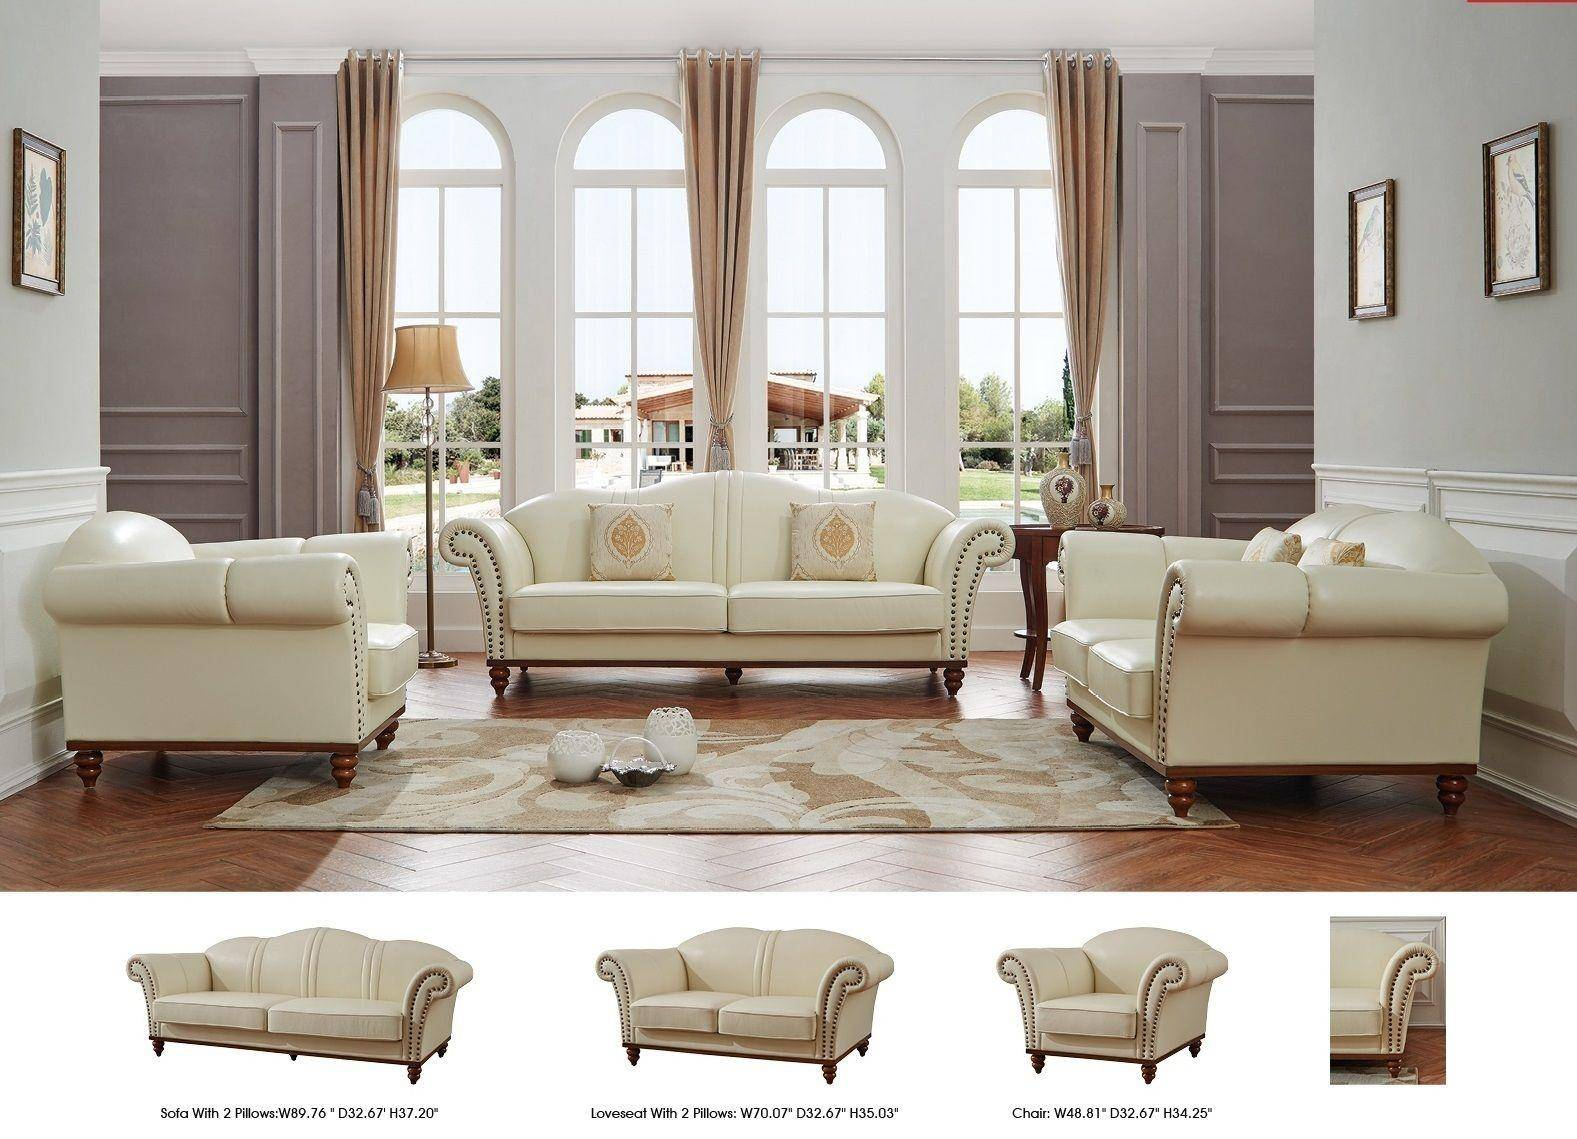 Sofa For Sale Online Esf 2601 Ivory Italian Leather Living Room Sofa Set 2pcs Modern